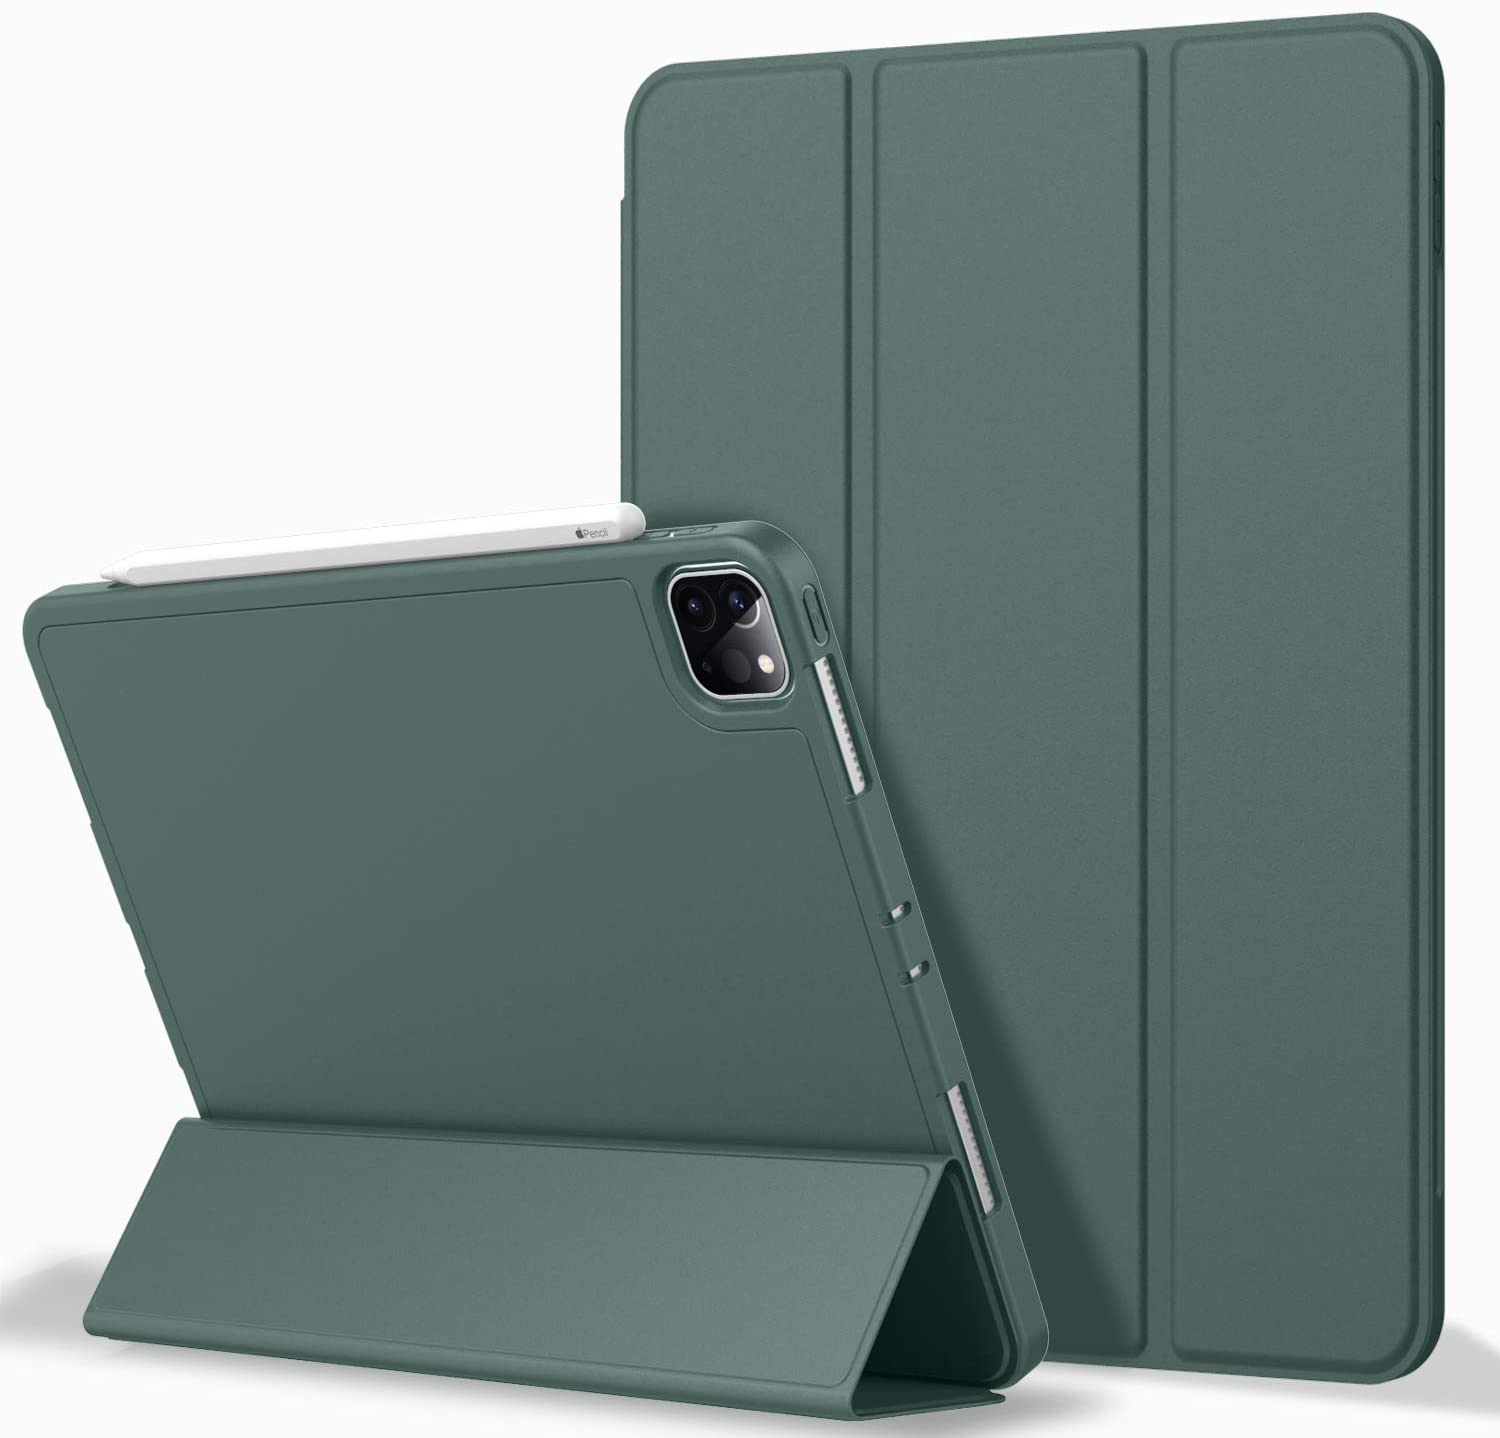 iPad Pro 11 Case 2020 with Sale item 2nd Generation Holder Ultra-Cheap Deals Pencil ZryXa